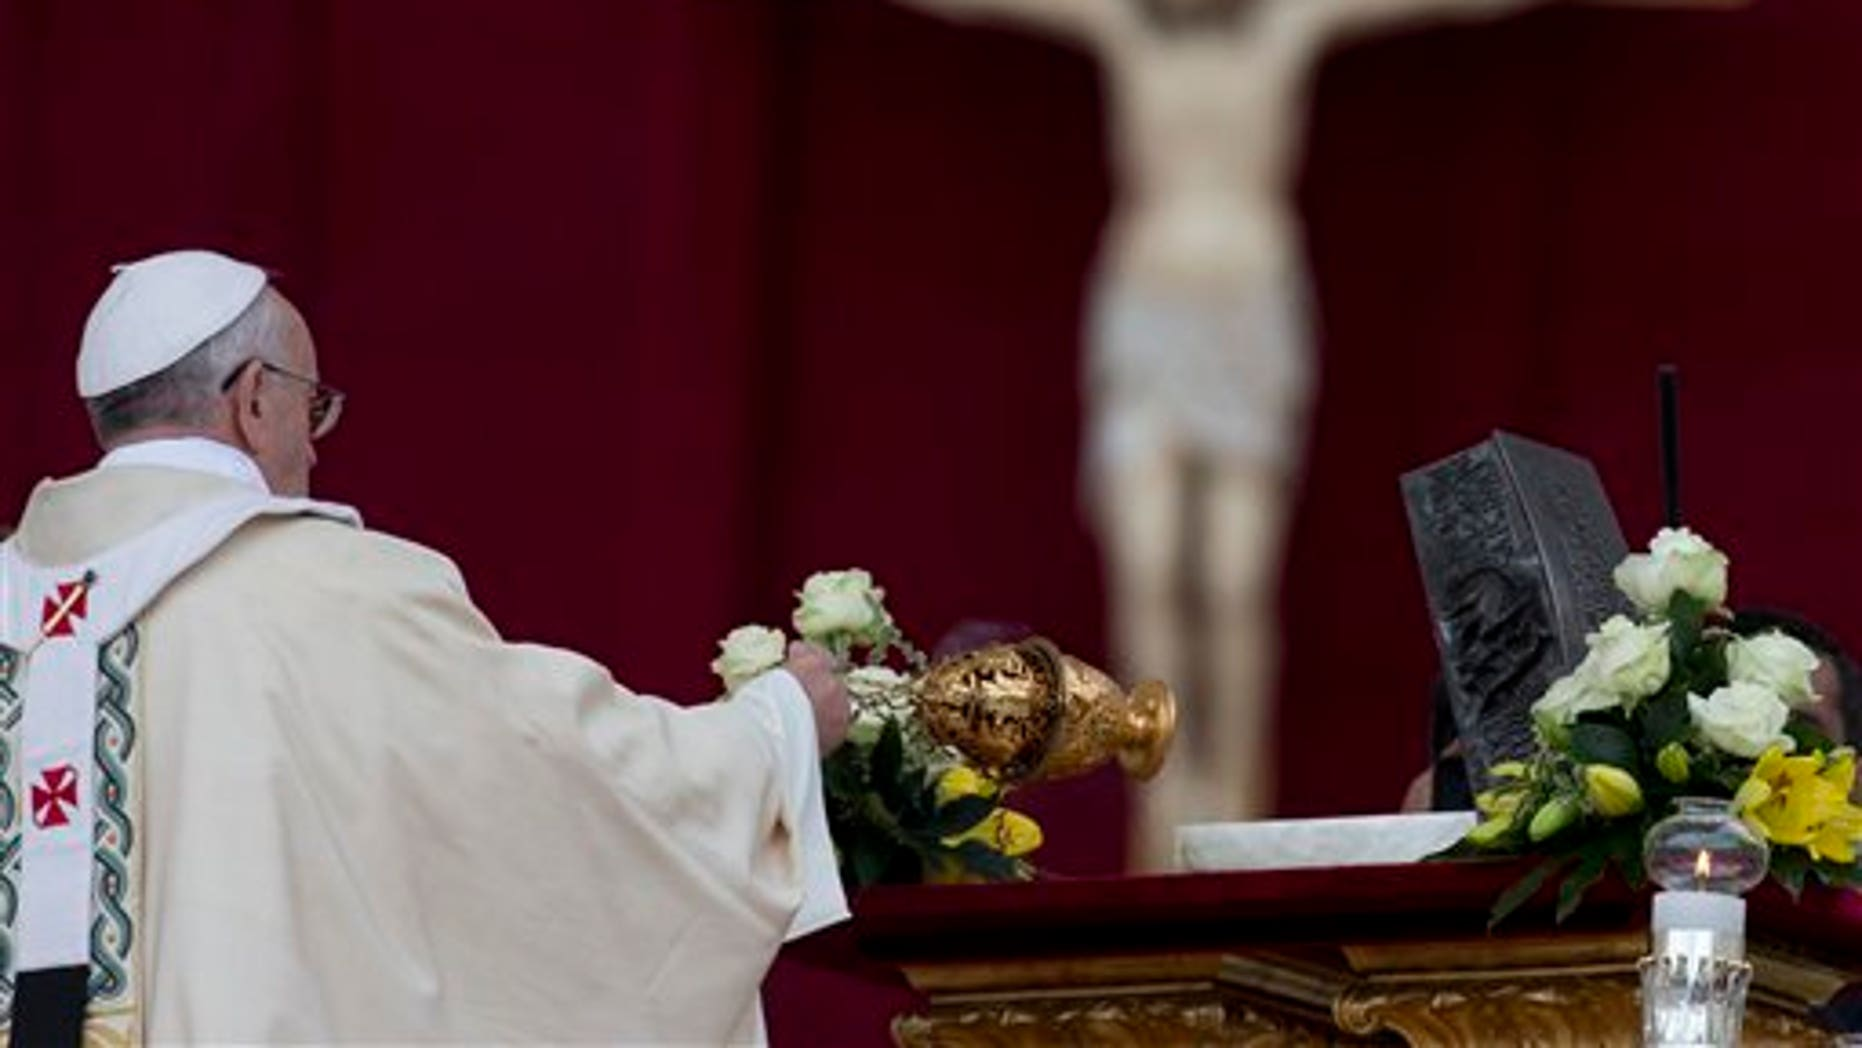 Pope Francis blesses the relics of St. Peter as he celebrates mass for the end of the Year of Faith, in St. Peter's Square at the Vatican, Sunday, Nov. 24, 2013. (AP Photo/Andrew Medichini)